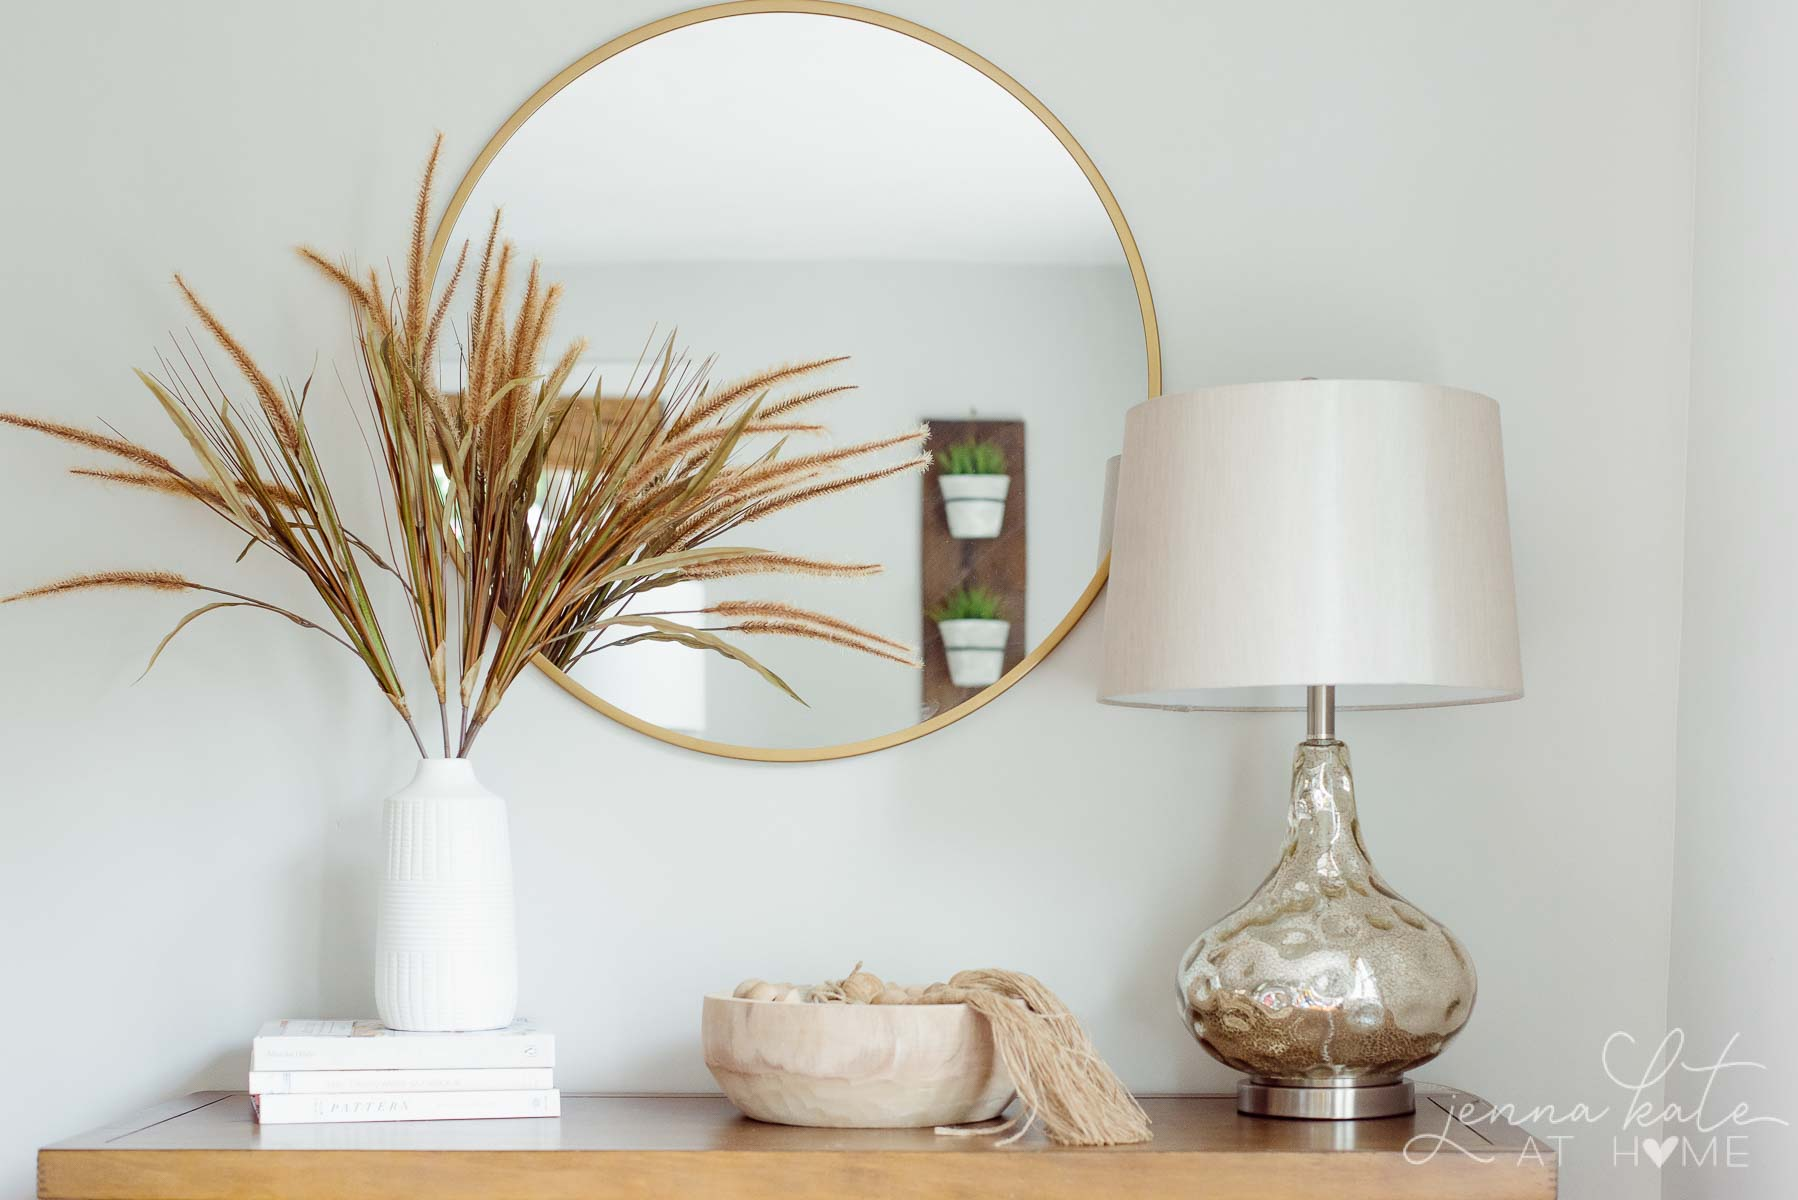 Living room console table with fall grasses in a vase